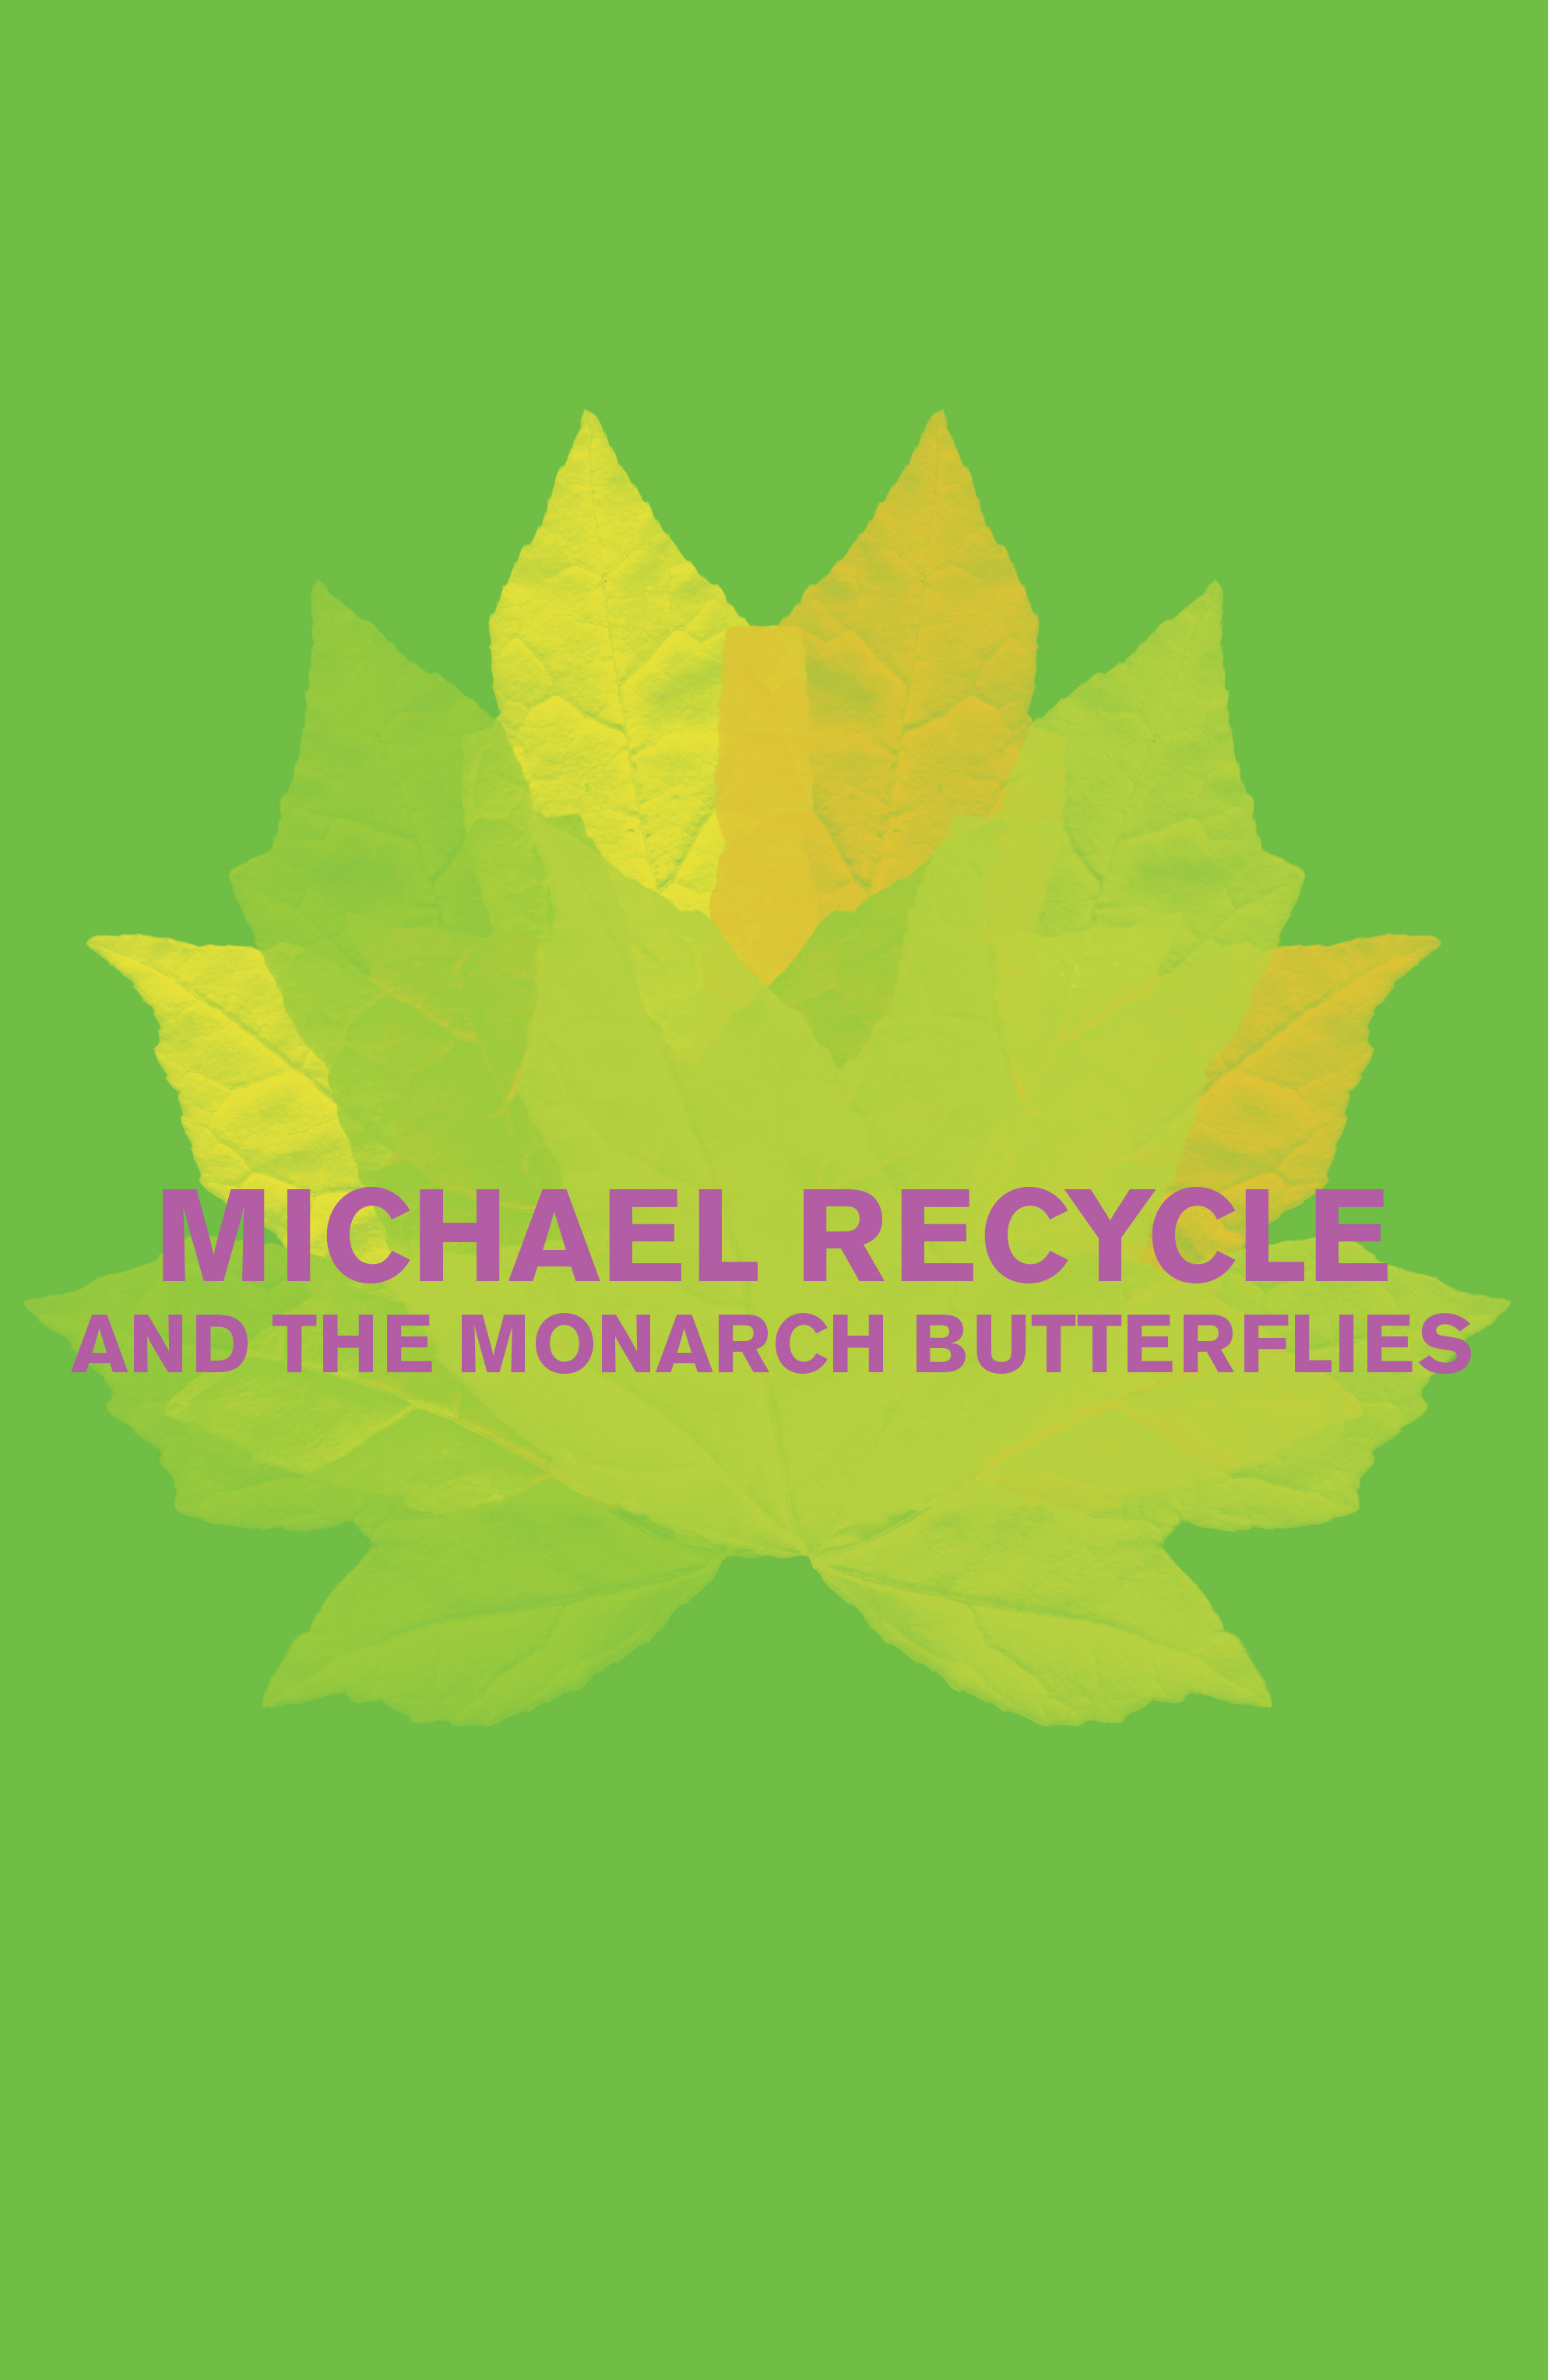 Read online Michael Recycle comic -  Issue #3 - 4